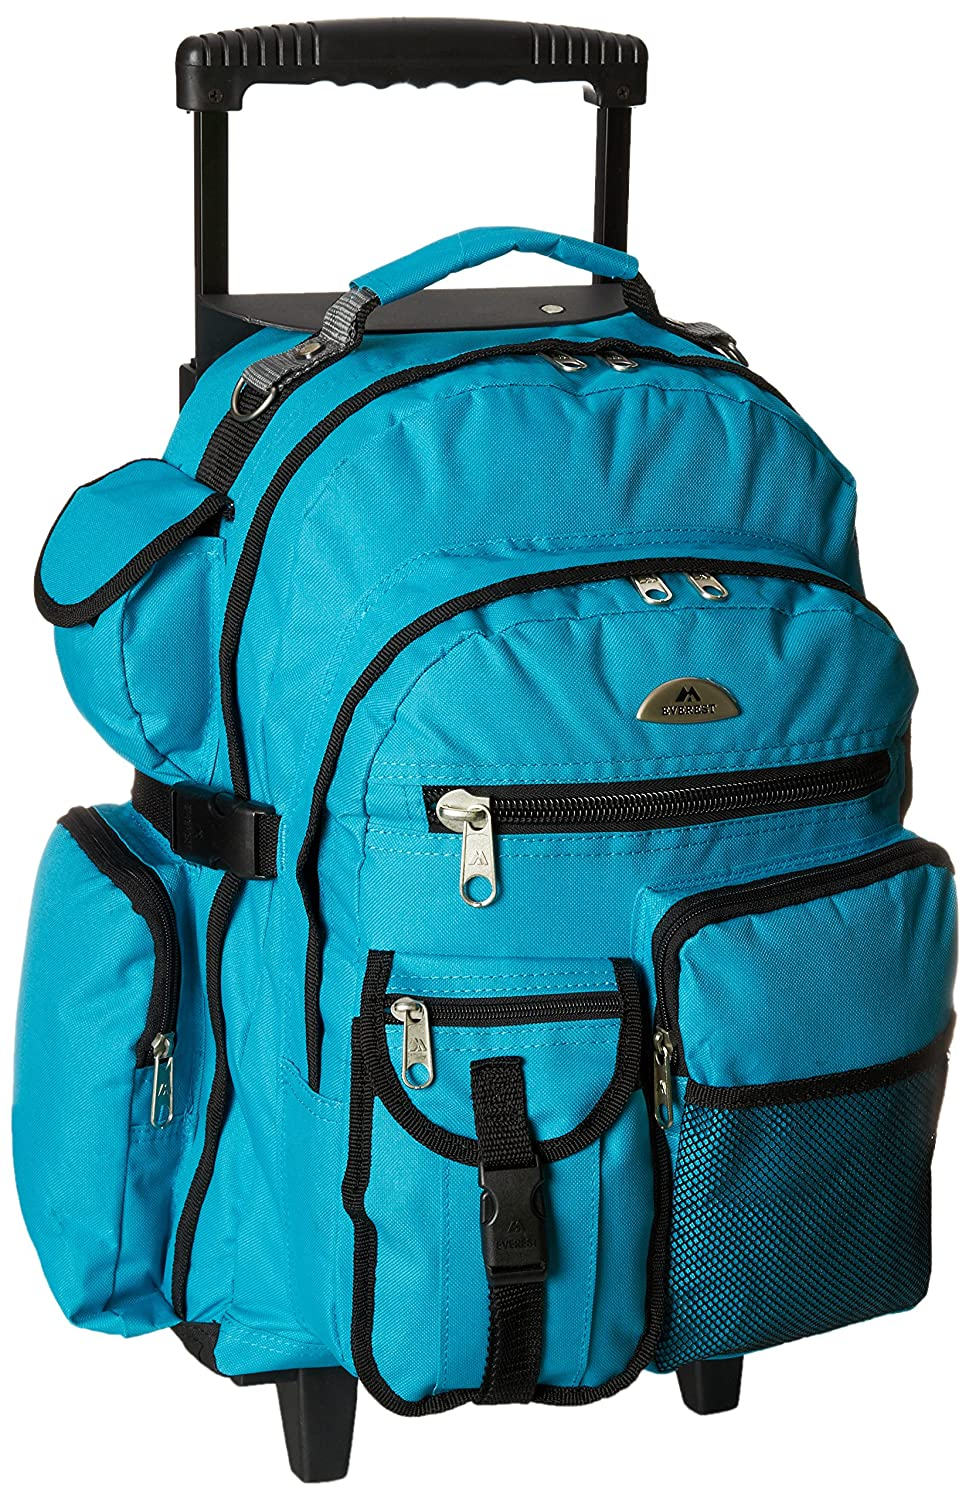 Turquoise Everest Deluxe Wheeled Backpack, Burgundy, One Size